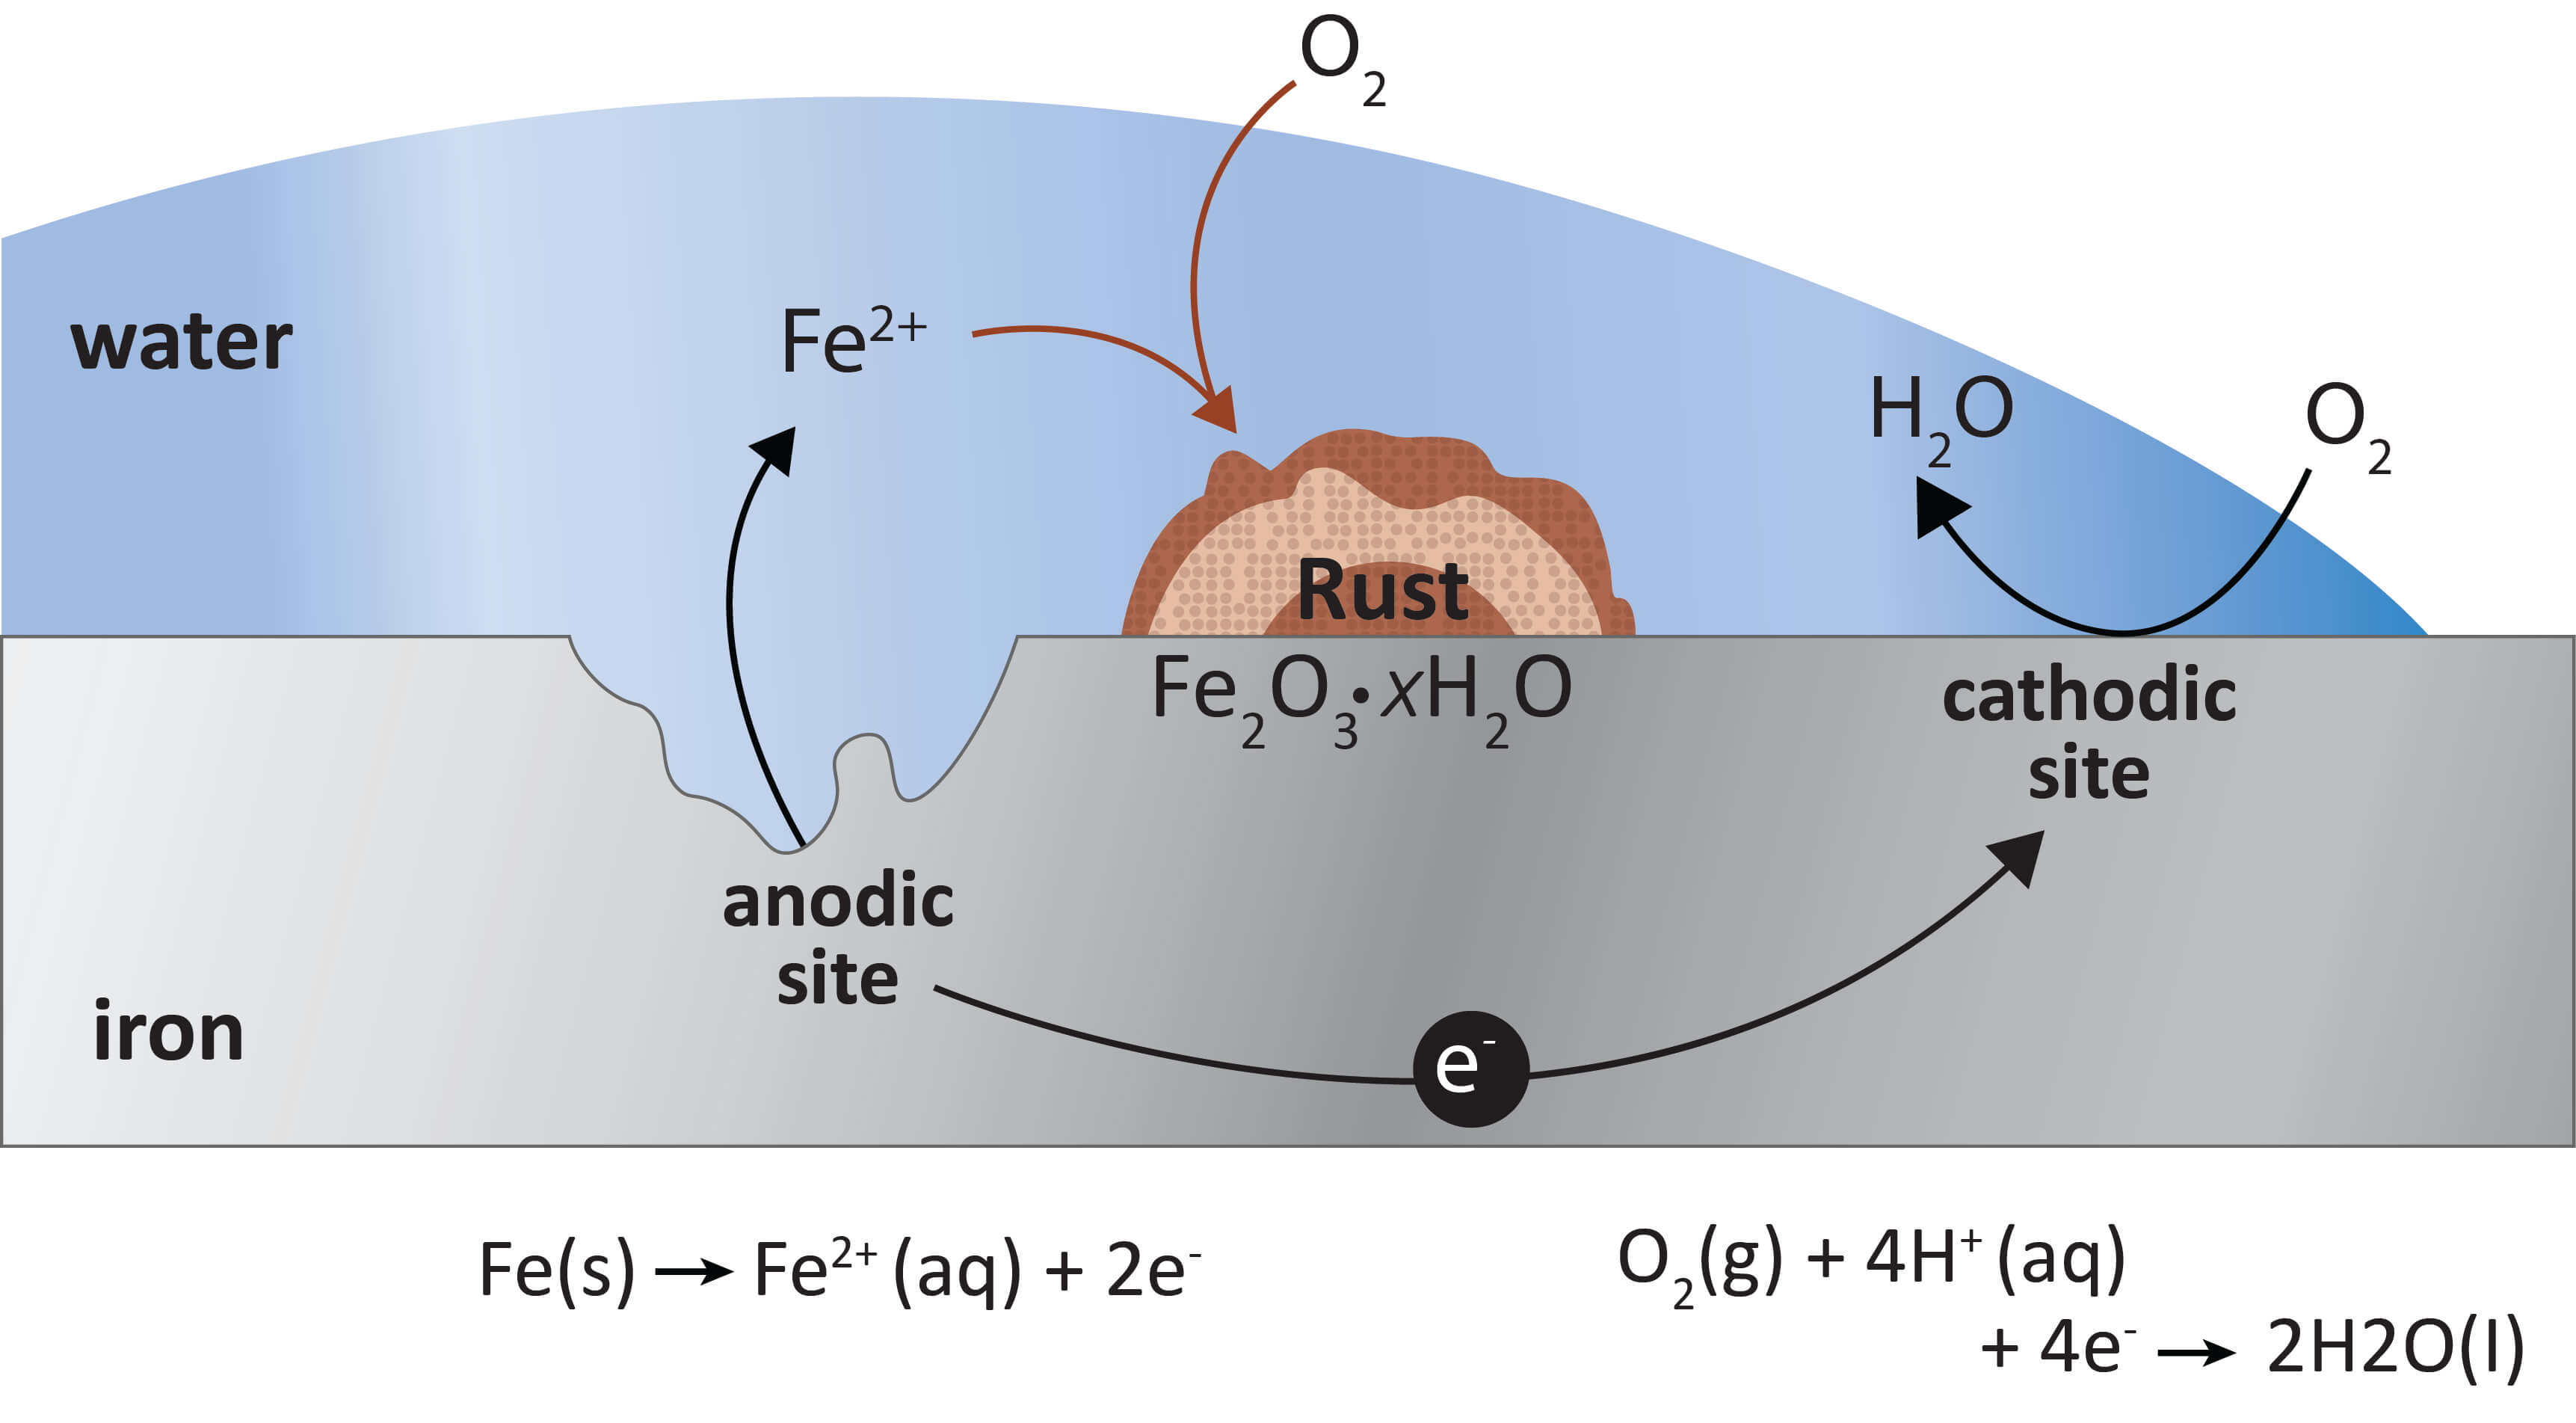 Figure 1. Ferrous surface reacting with air and moisture to cause rusting and degradation.